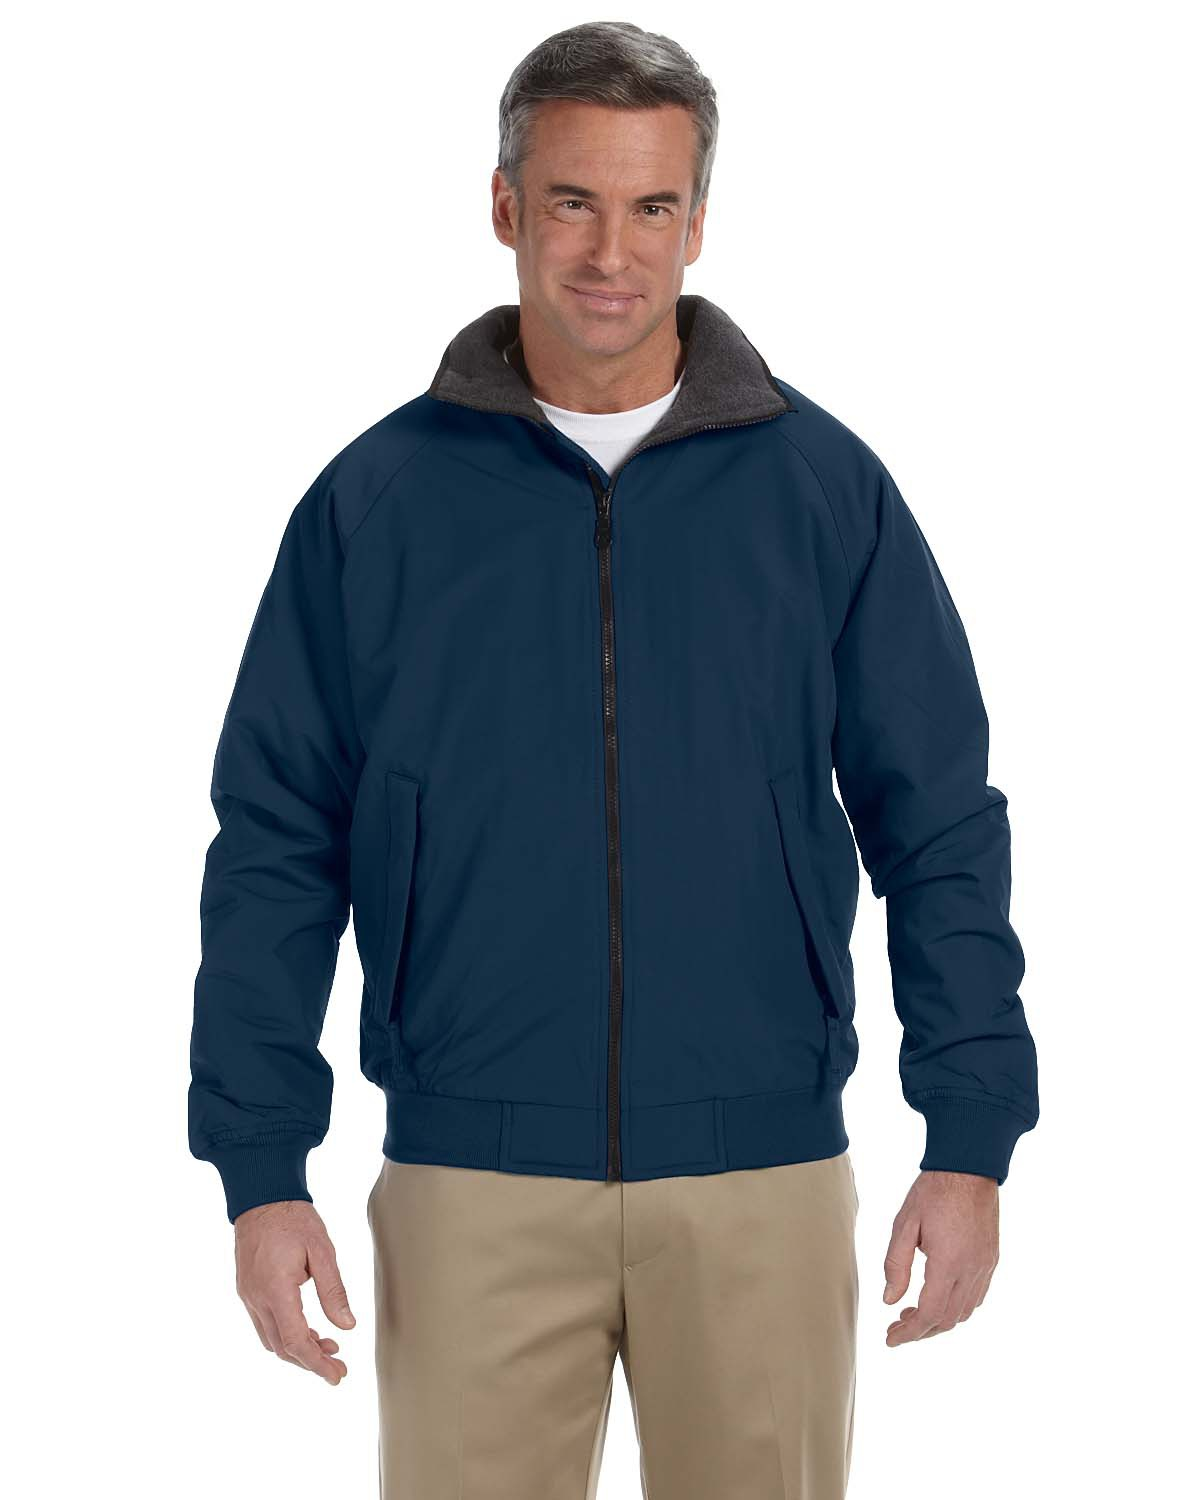 Devon & Jones D700 - Men's Three-Season Classic Jacket